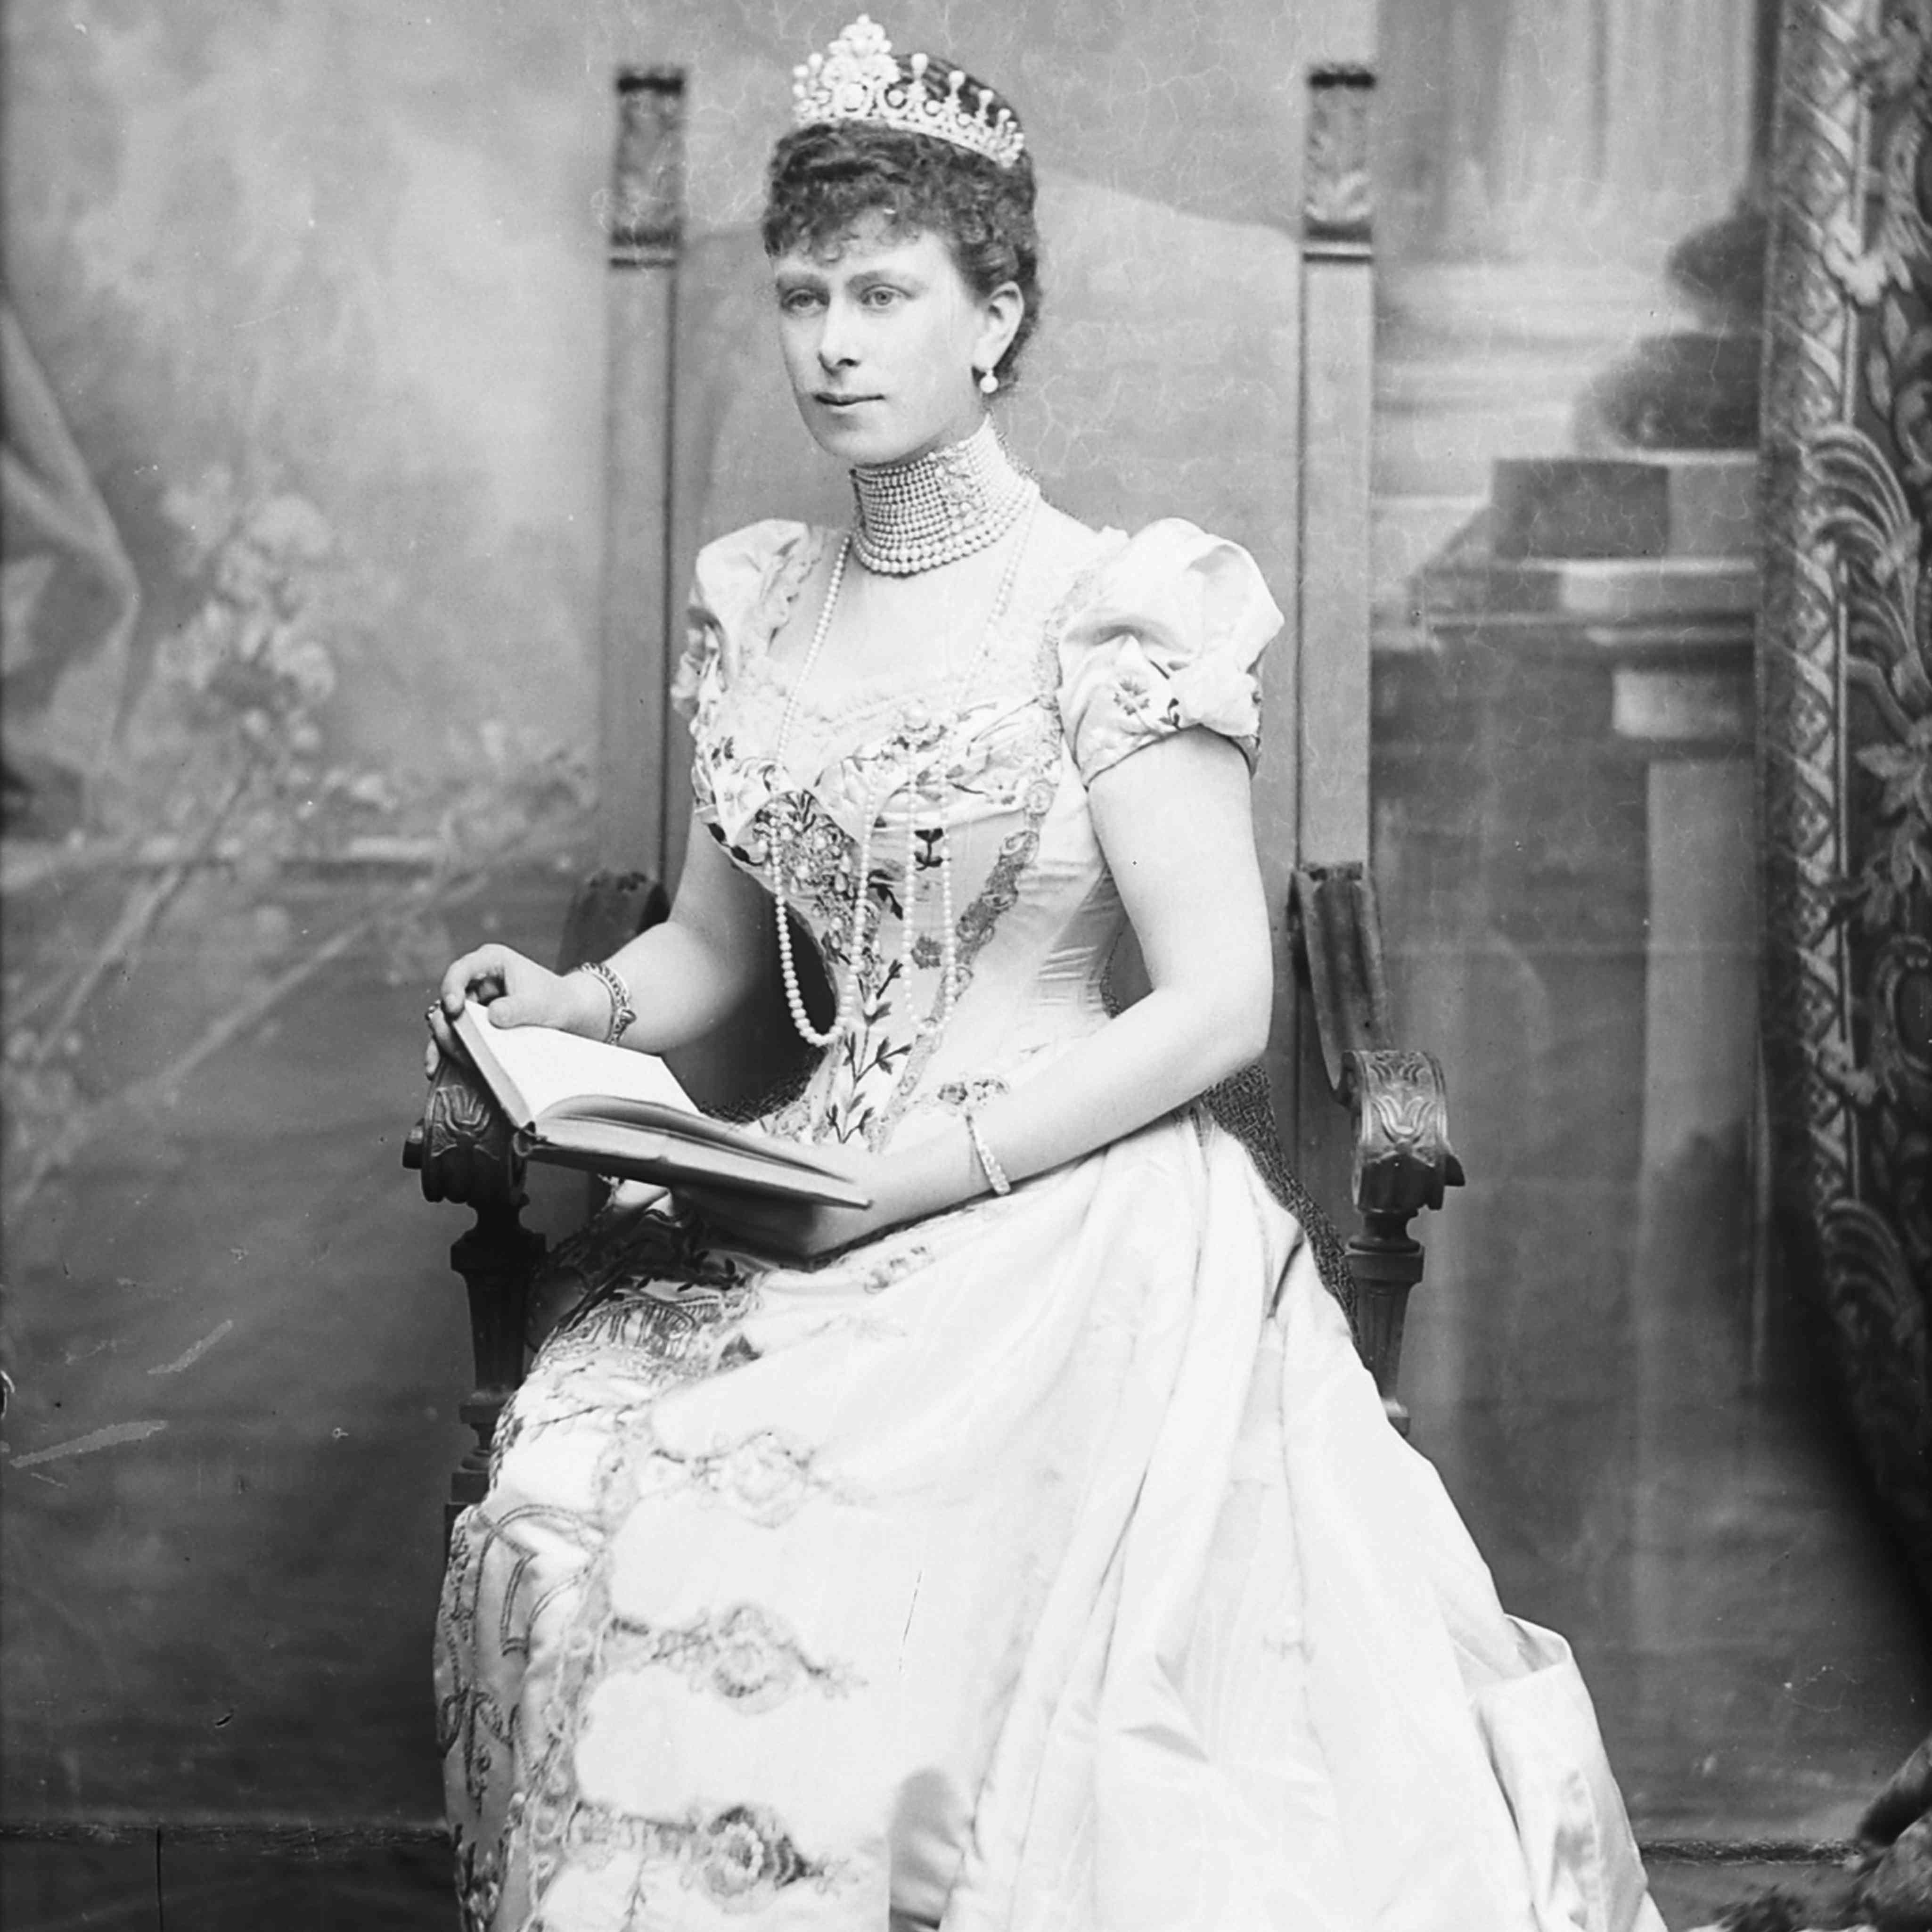 Princess Mary of Teck posing while reading a book